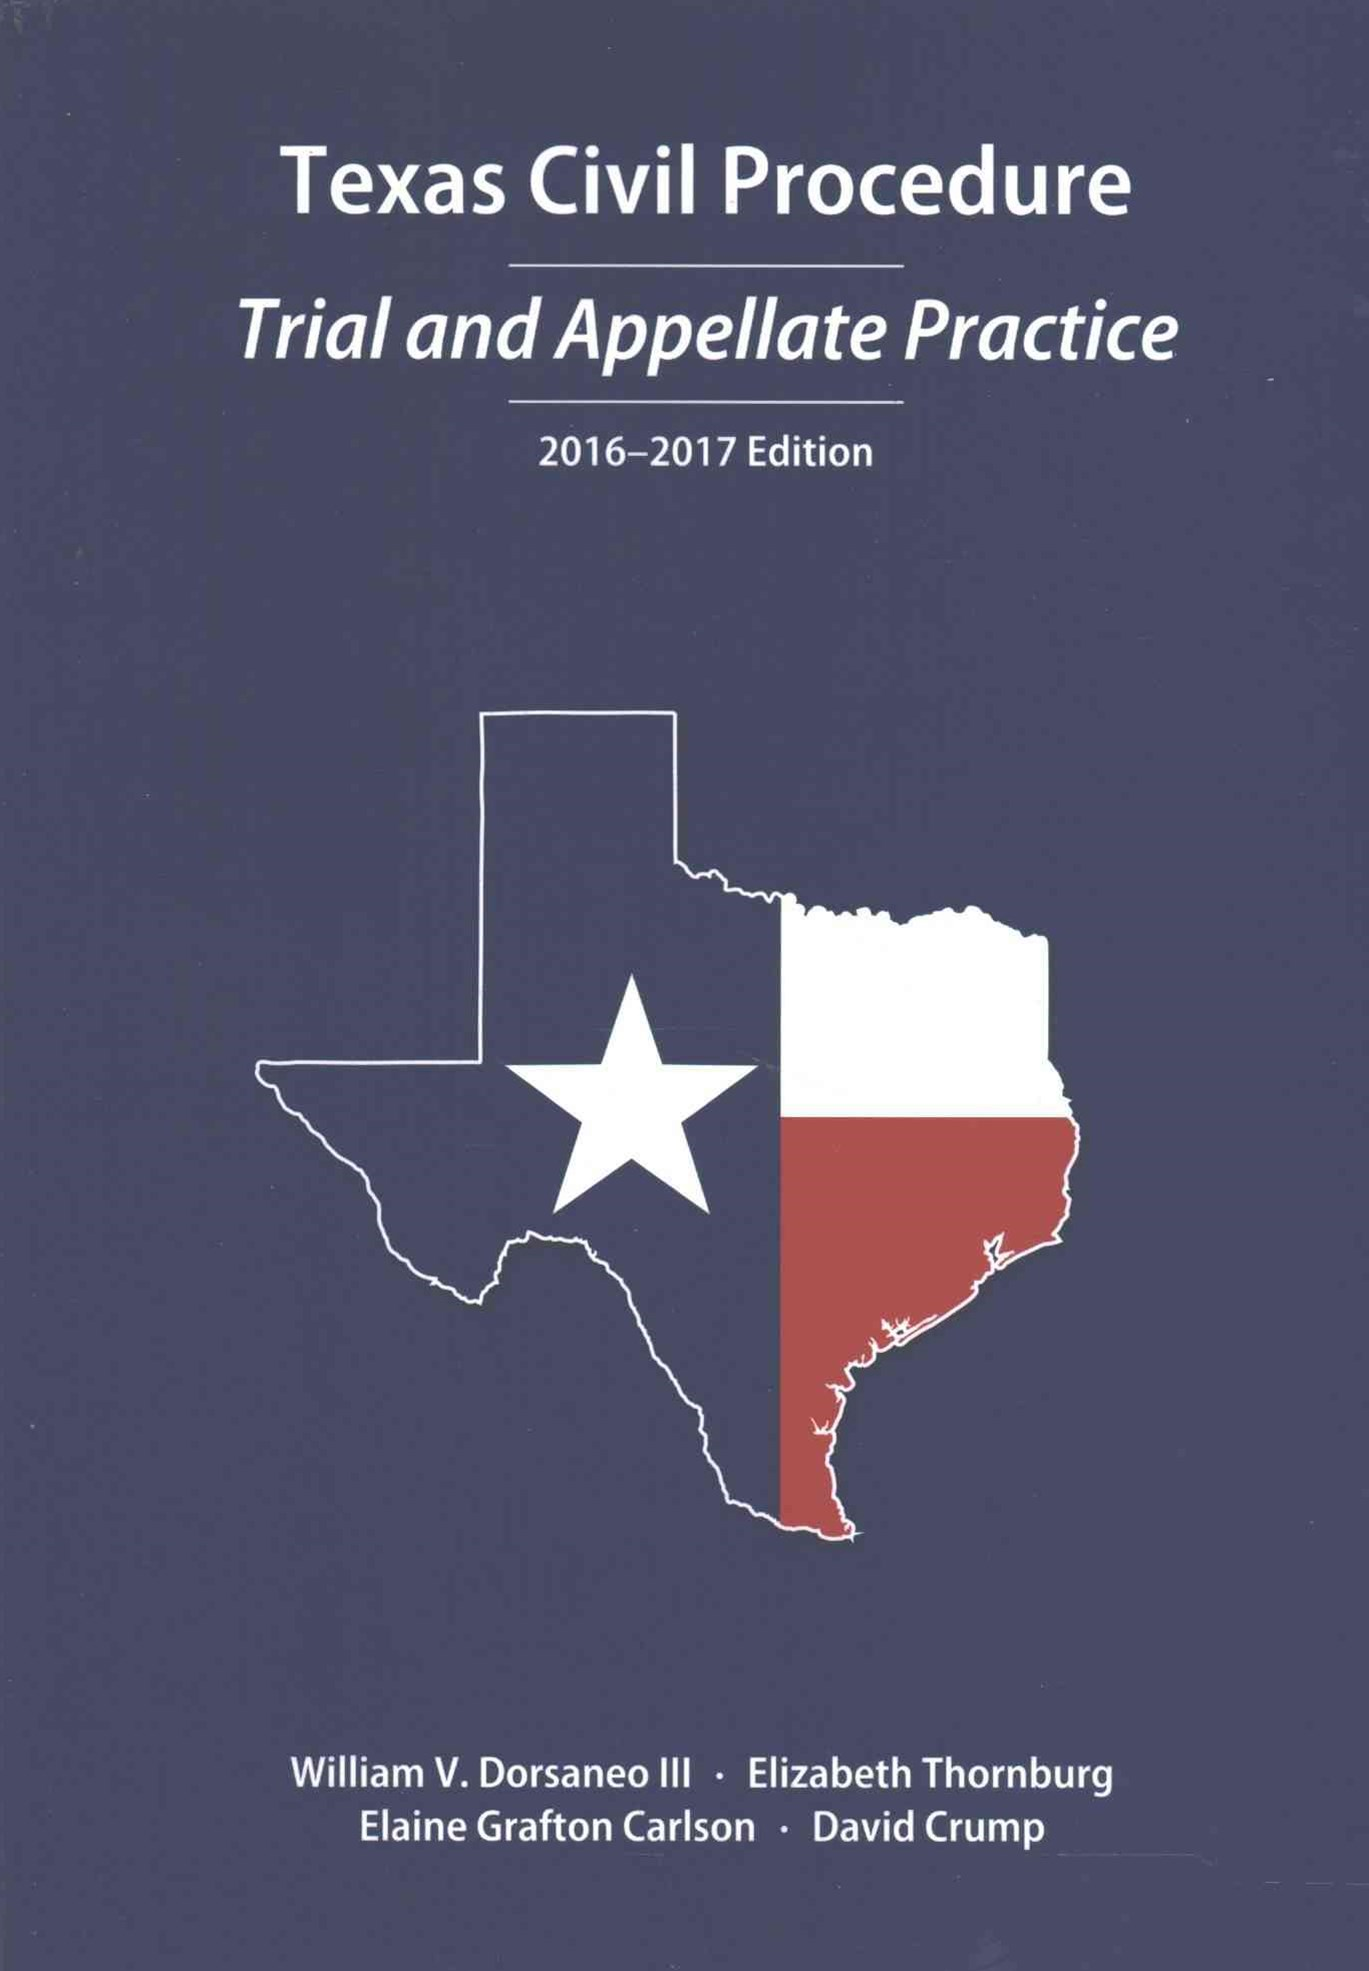 Texas Civil Procedure